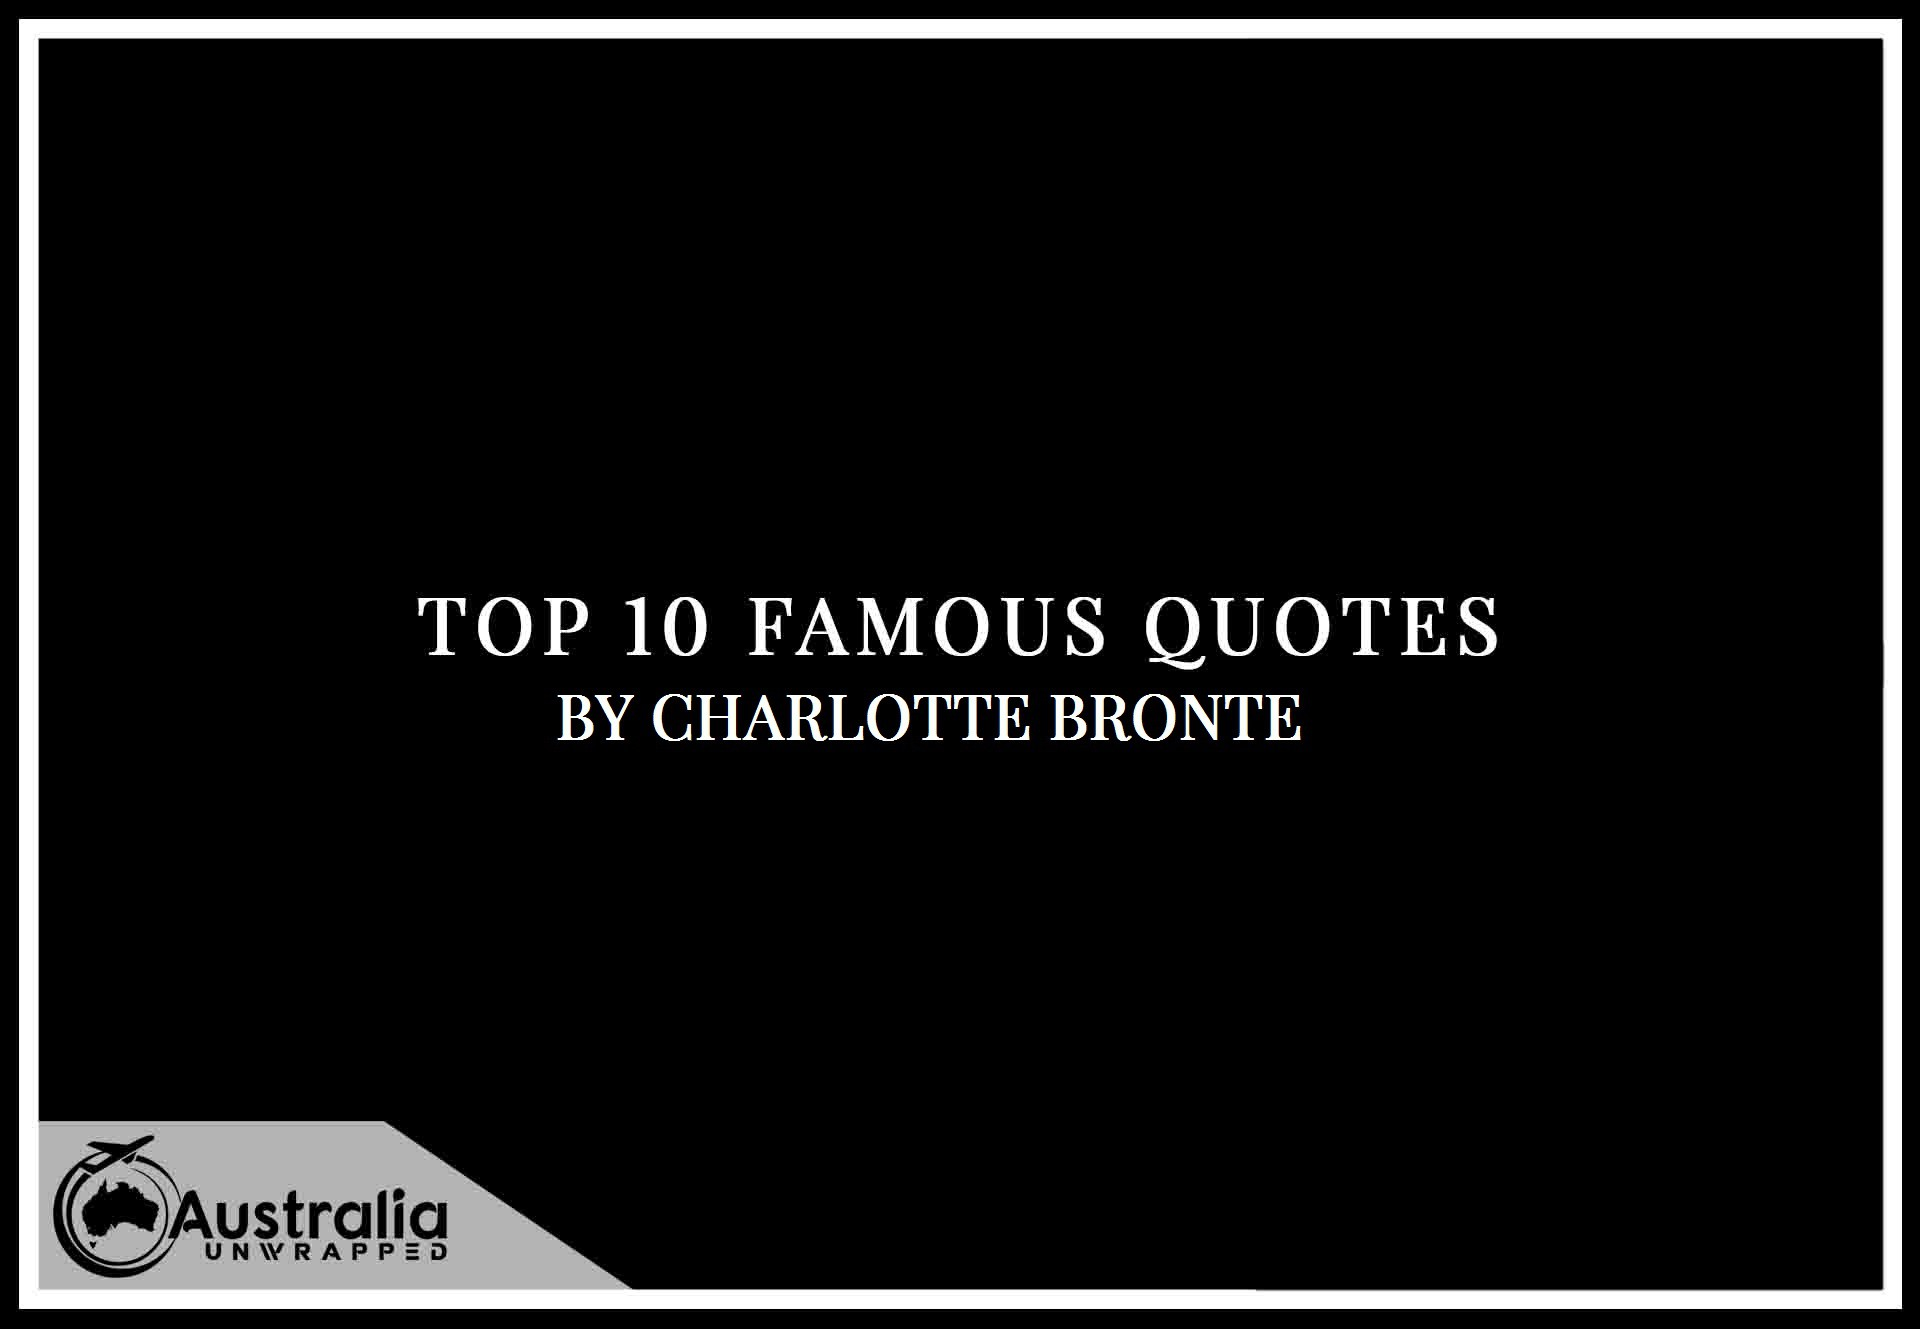 Charlotte Brontë's Top 10 Popular and Famous Quotes